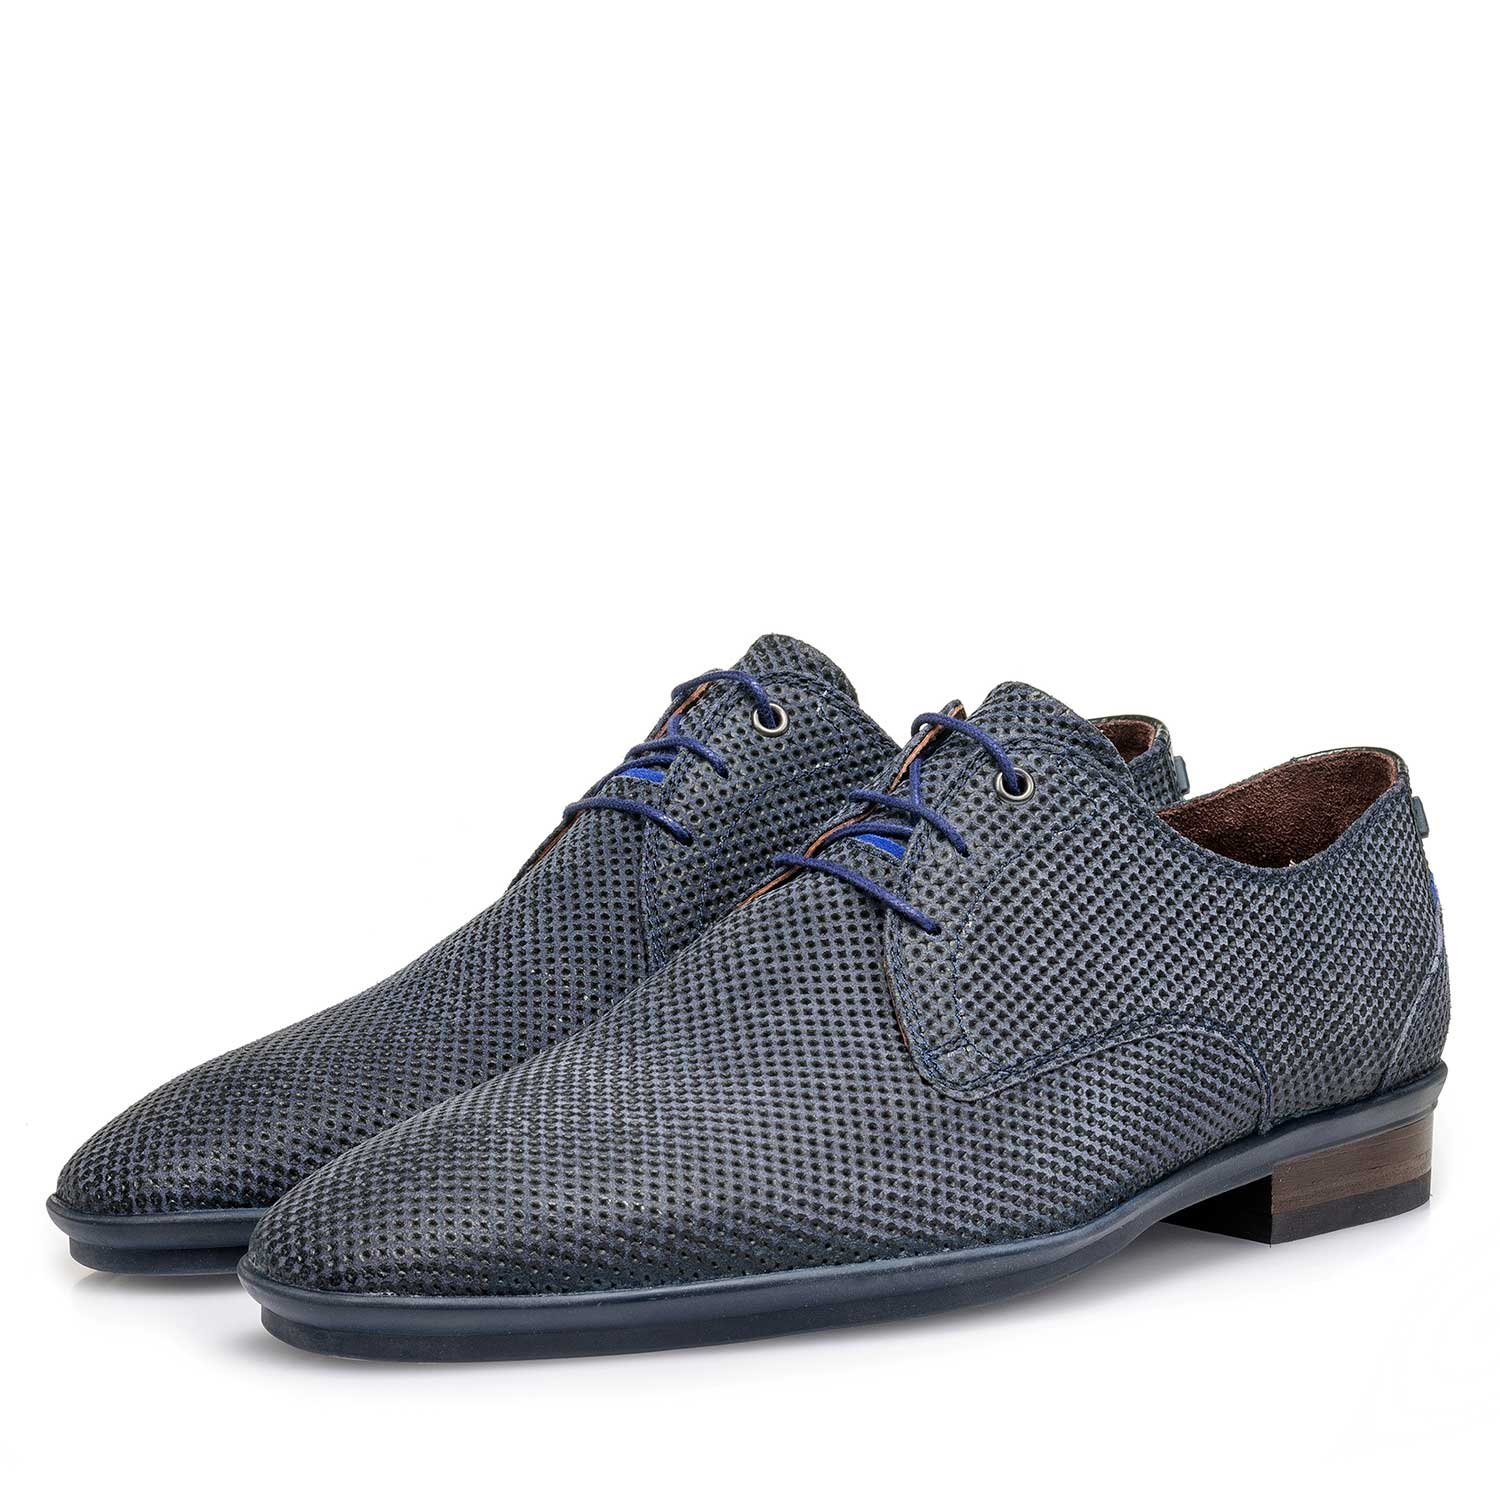 18120/10 - Dark blue suede leather lace shoe with a print